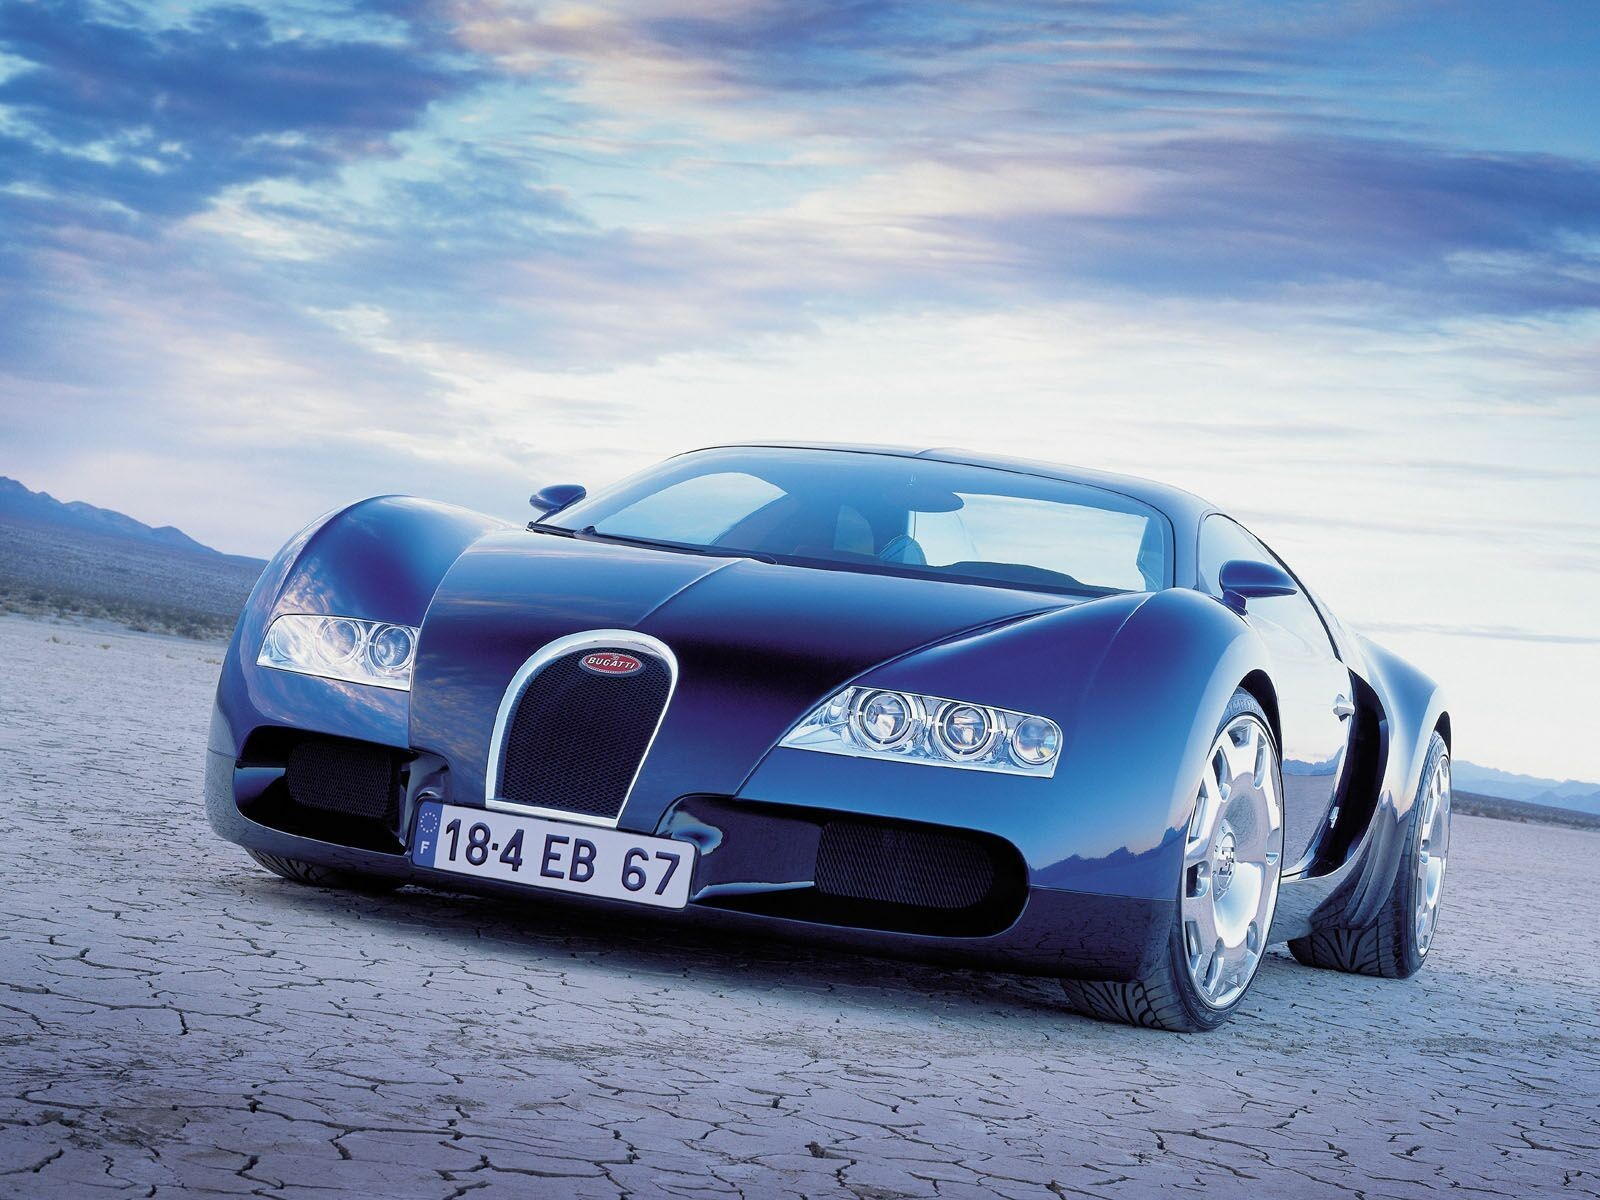 bugatti veyron concept cars HD Wallpaper